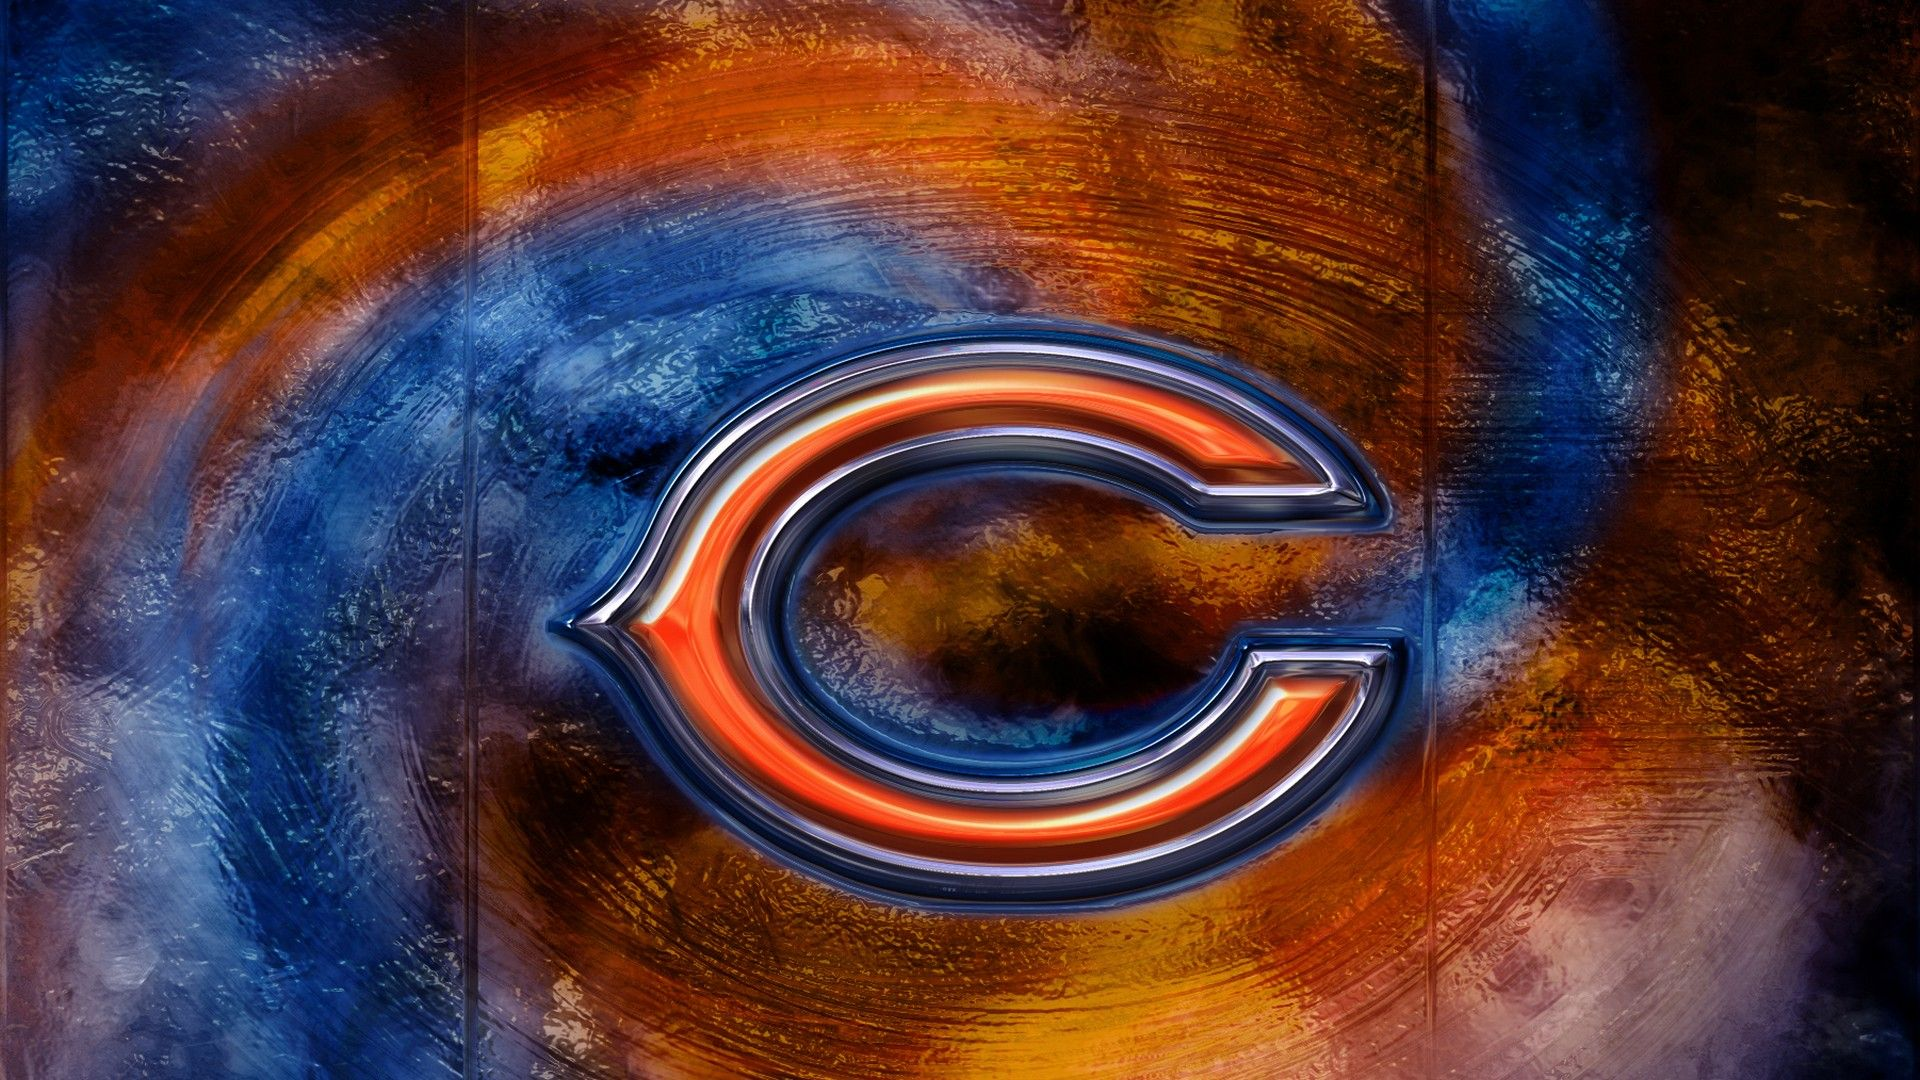 Chicago Bears Backgrounds HD Chicago bears, Football